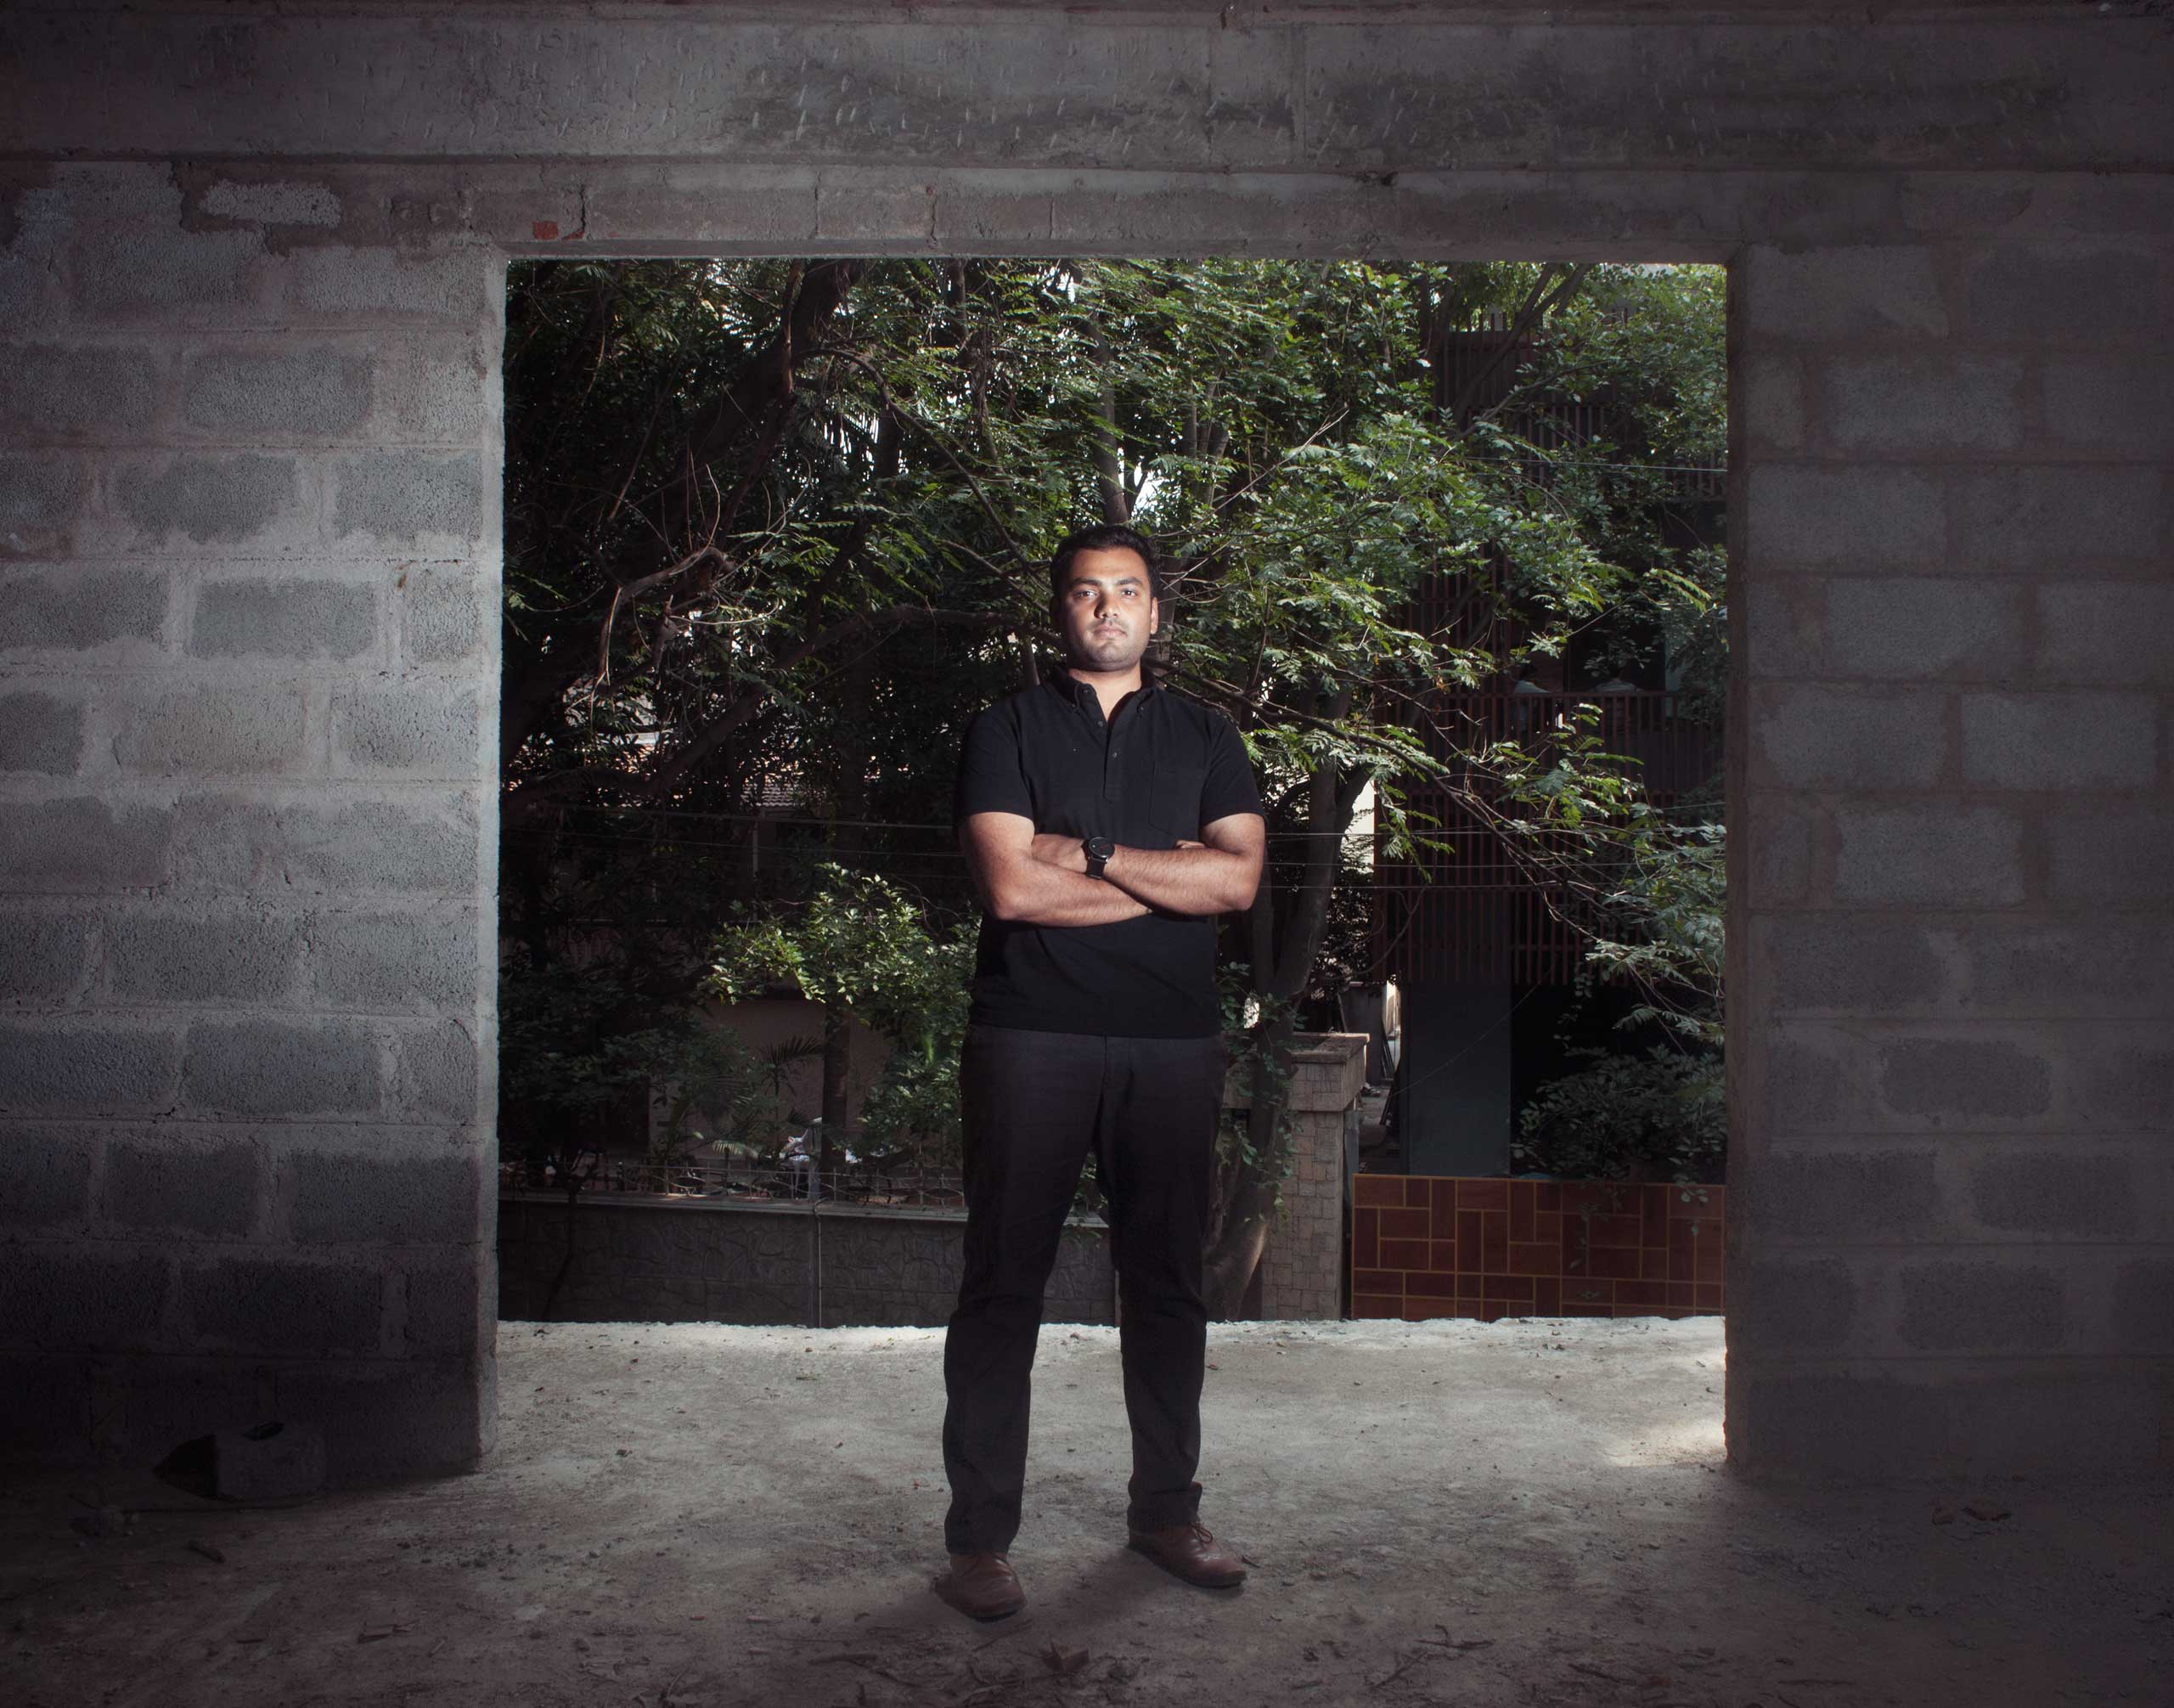 Architect Alok Shetty at one of his new construction sites in Bangalore, India on Aug. 20, 2014. He has designed an environmentally friendly house with folding walls.